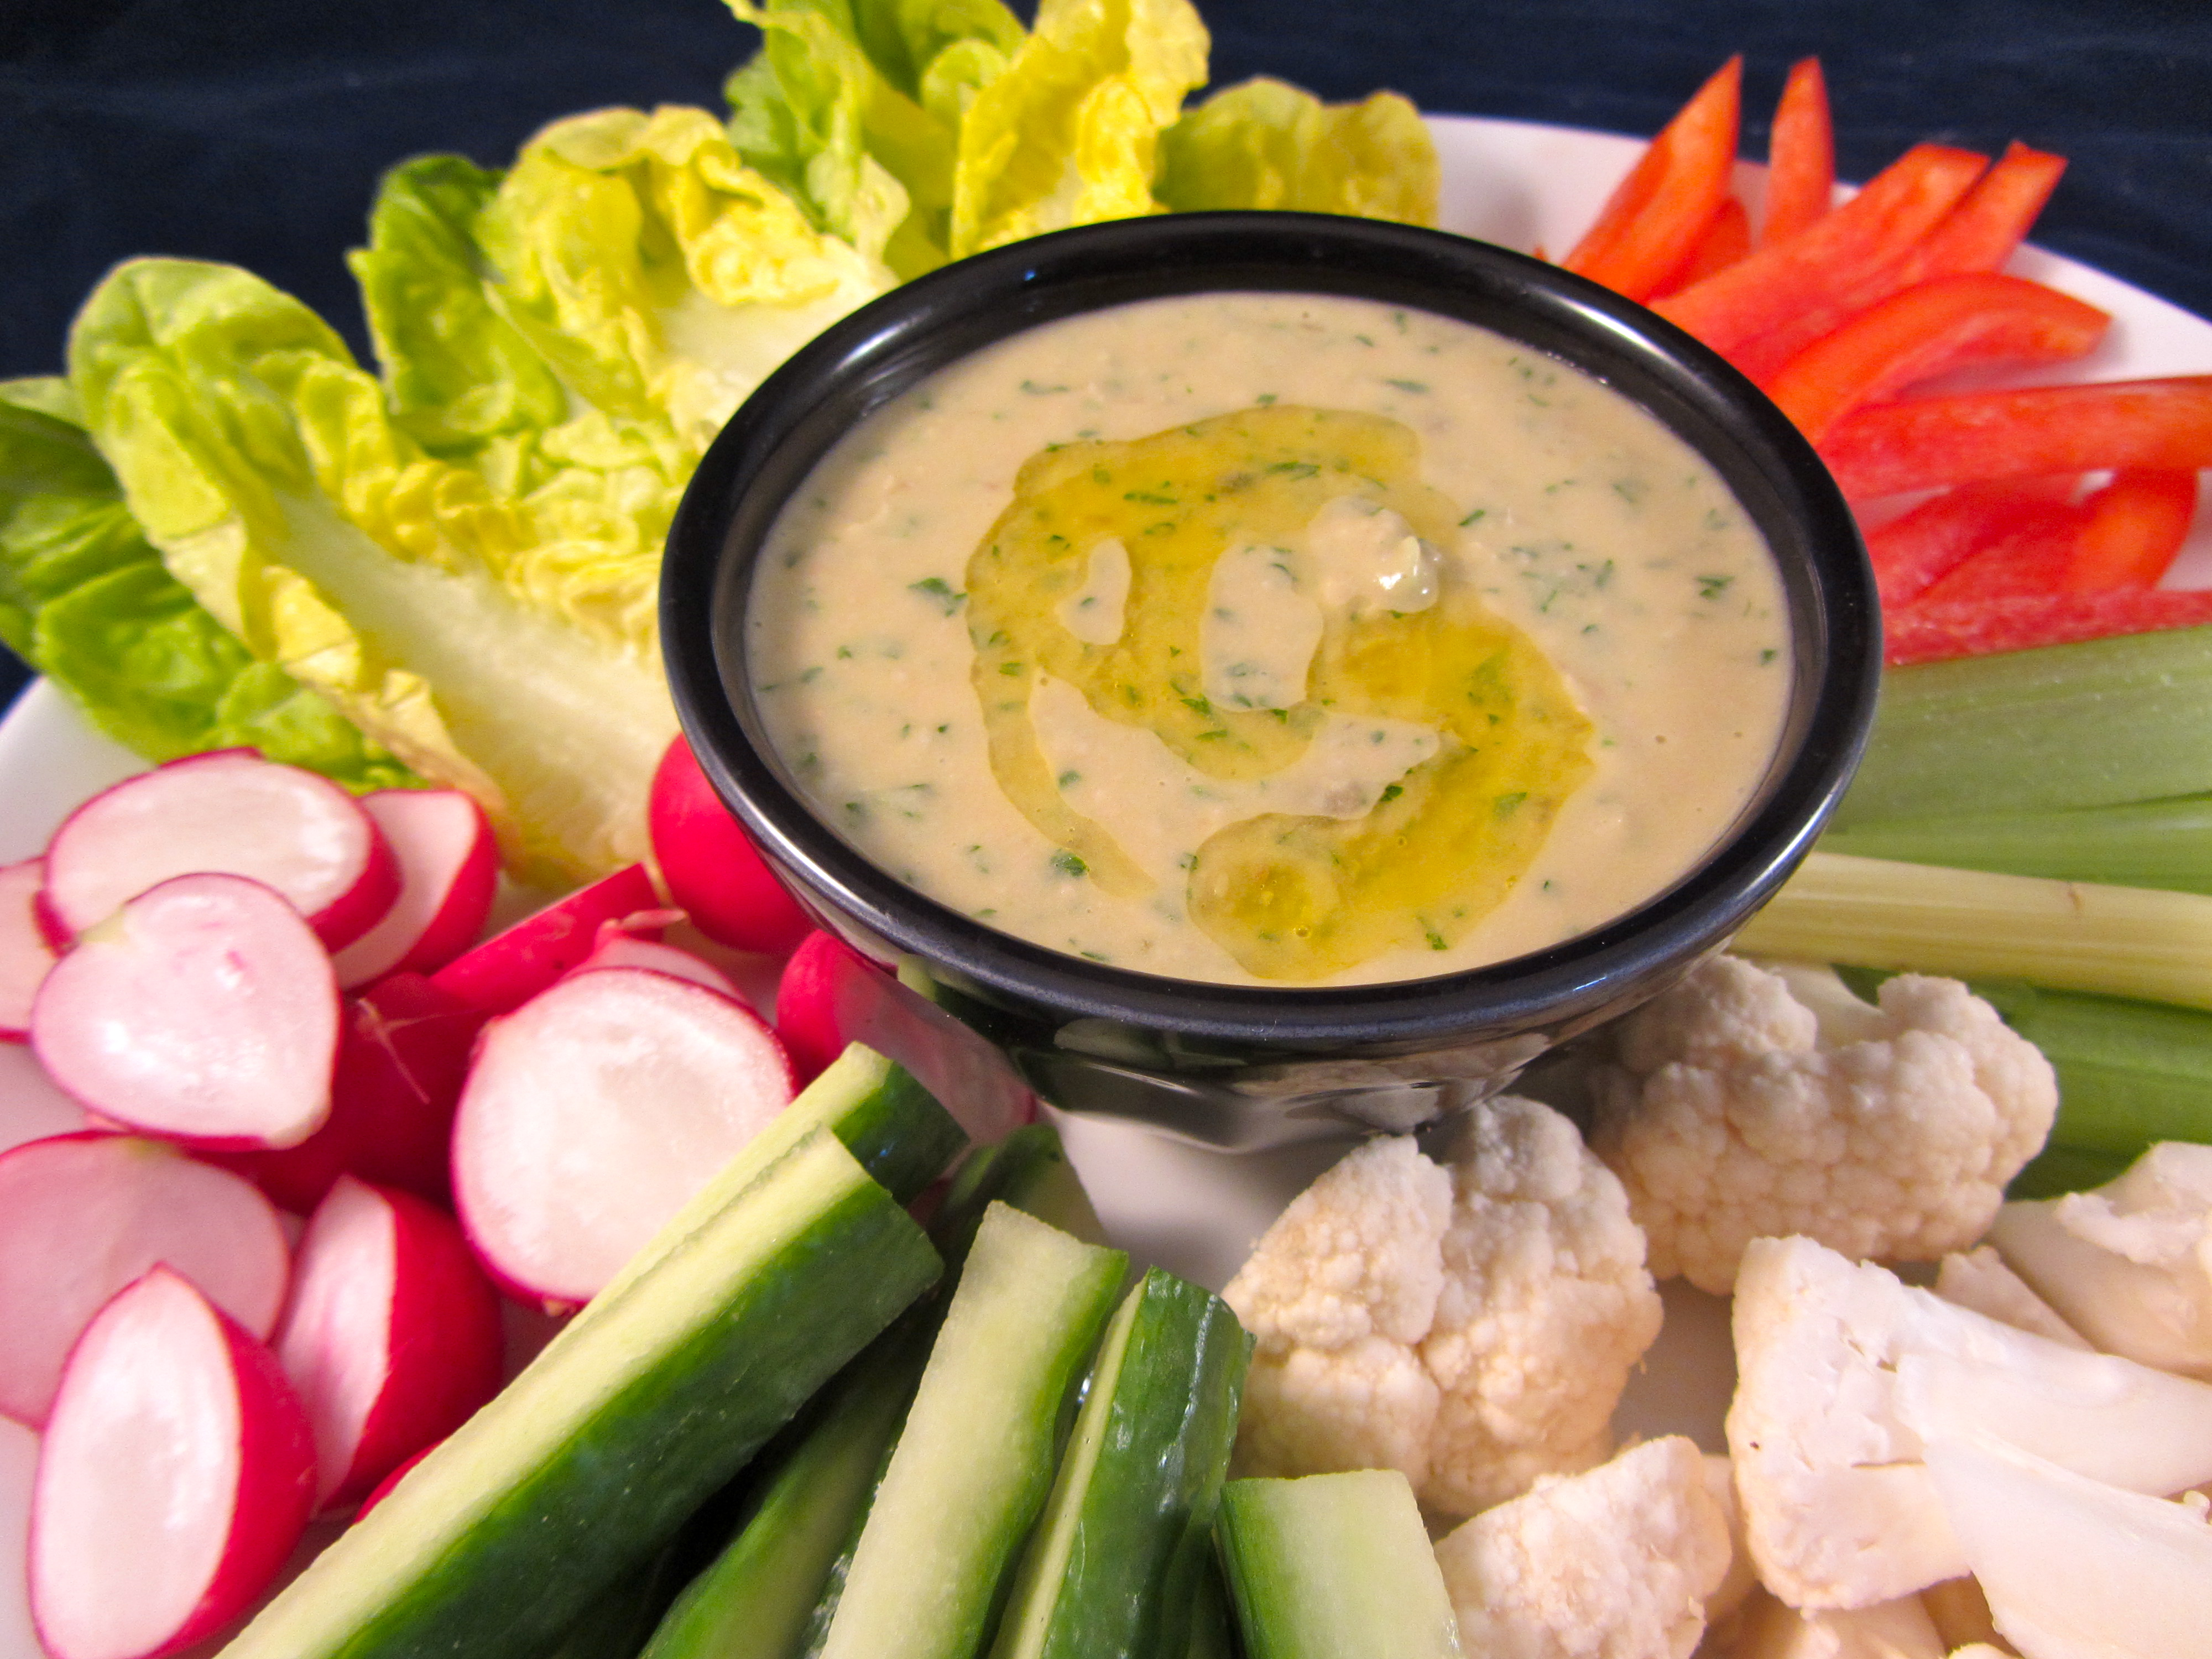 Warm Spinach-White Bean Dip With Crudites Recipe — Dishmaps